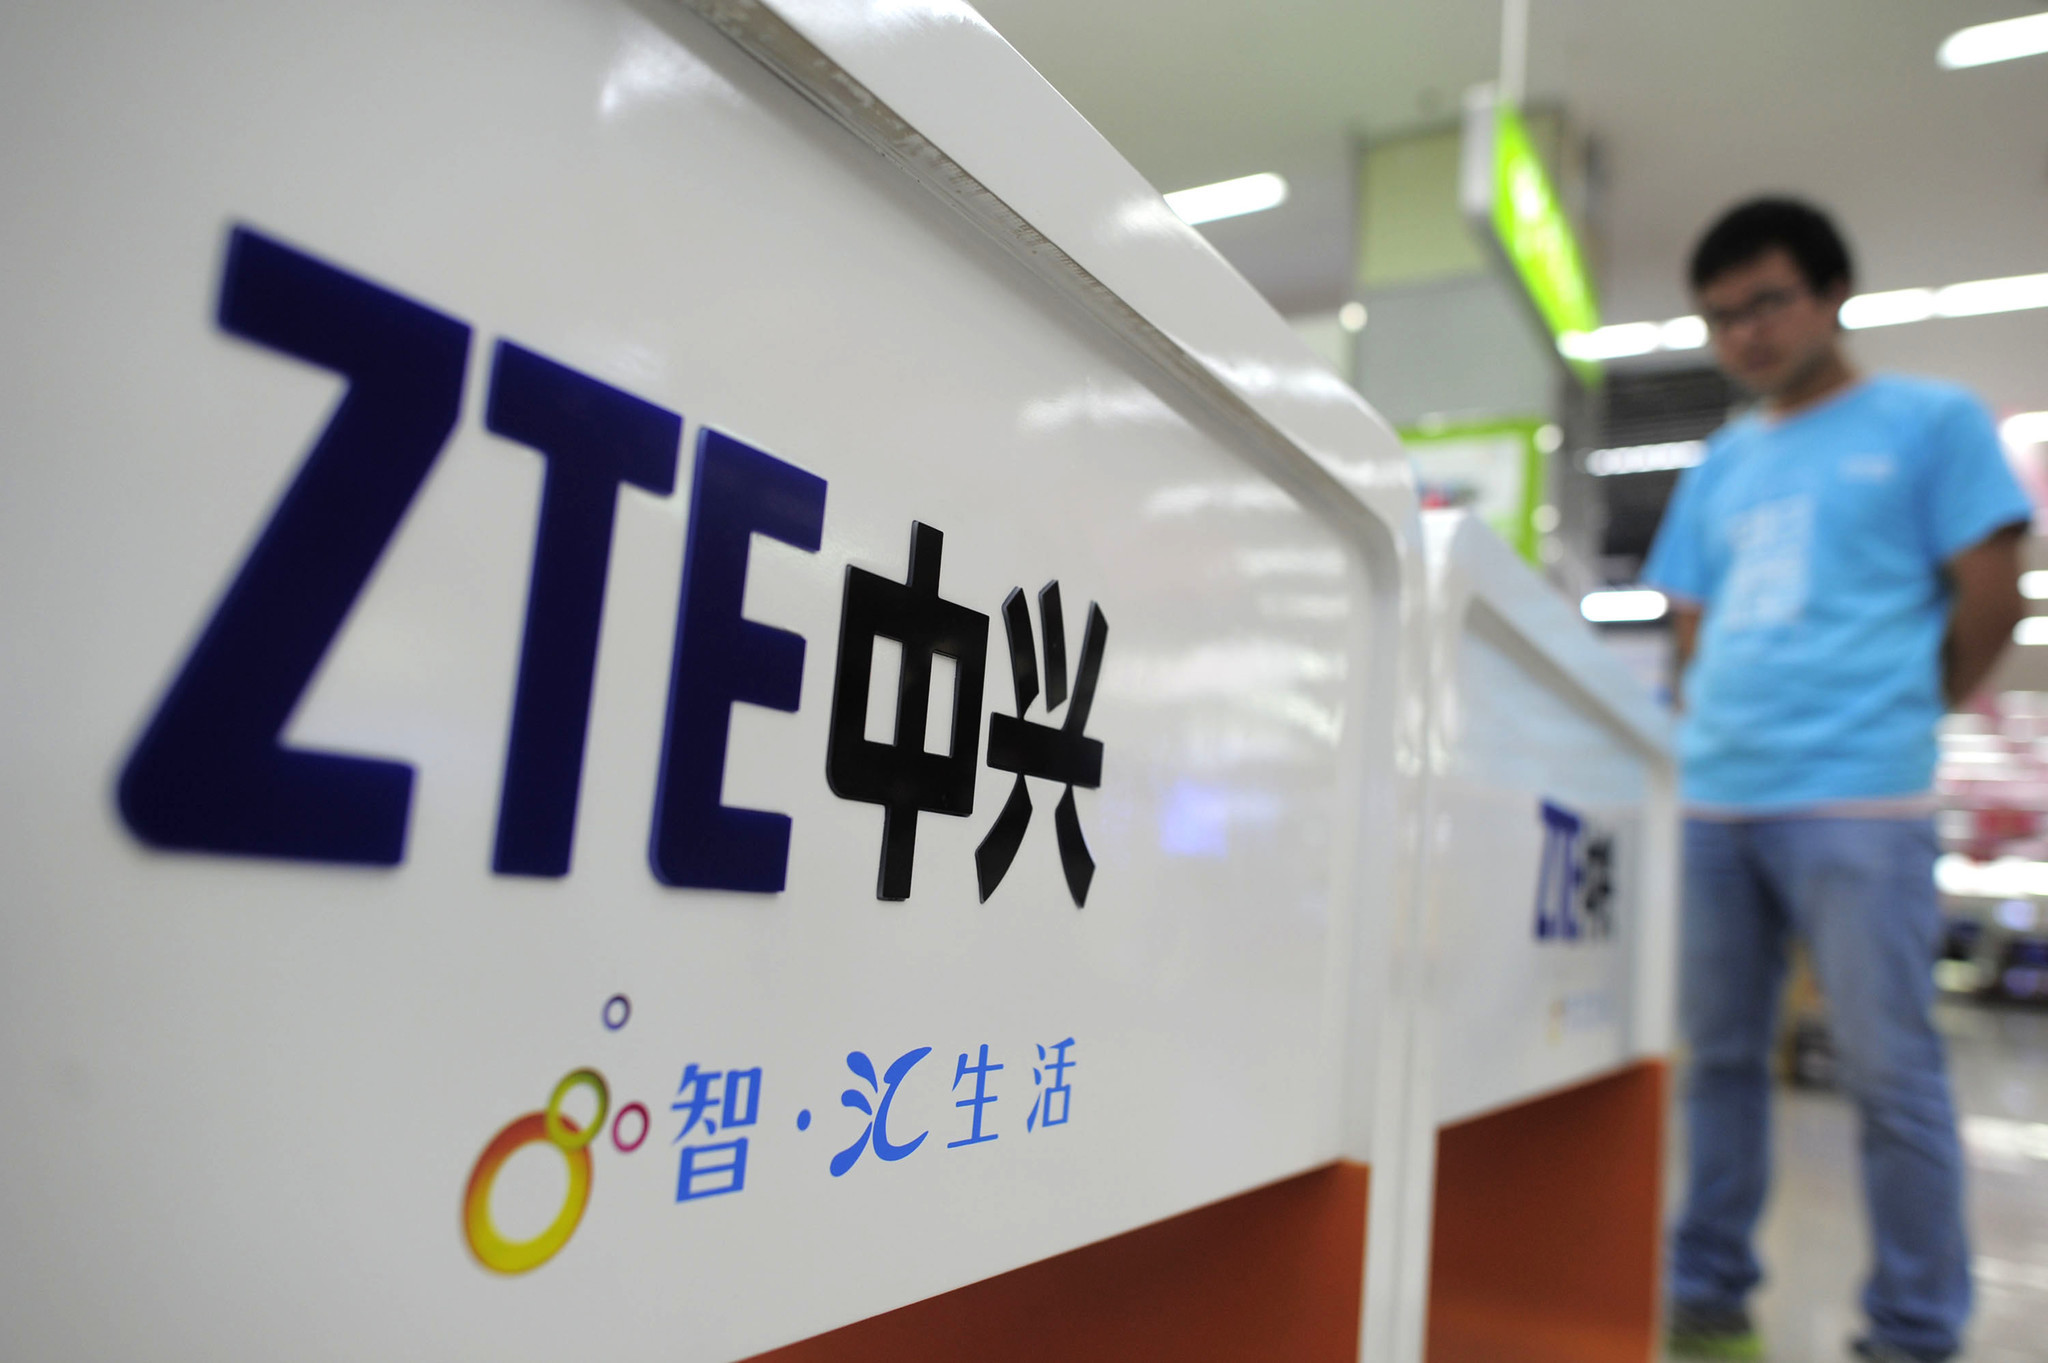 Trump says there's no deal for China's ZTE